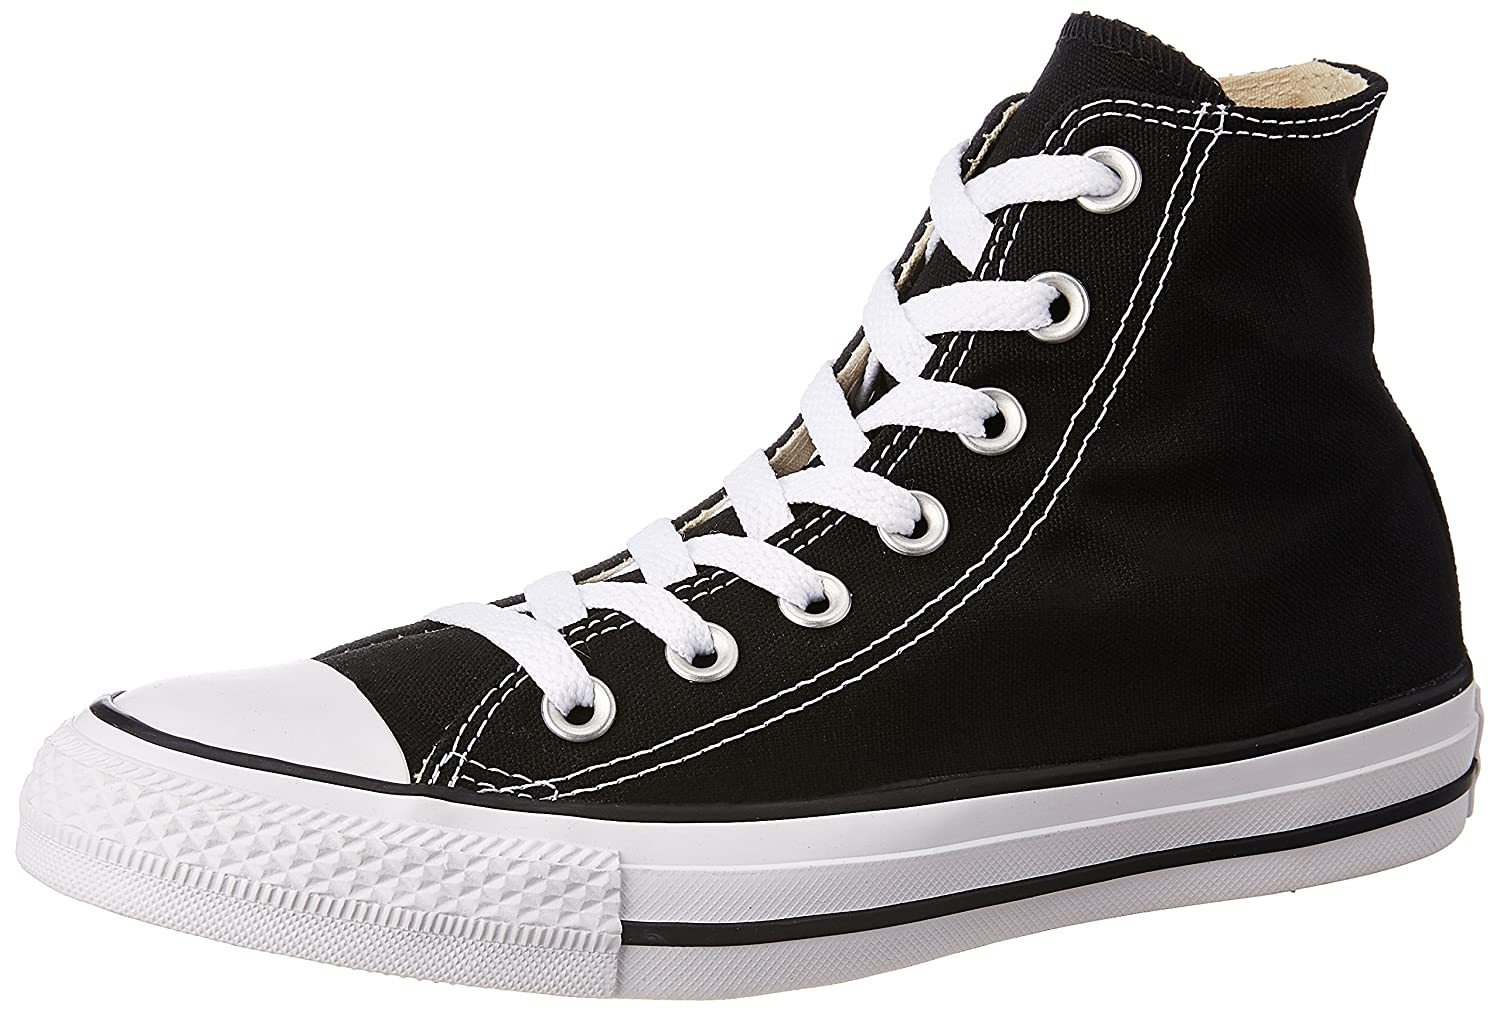 bc9d55b2f1ab Converse Unisex Black Sneakers - 11 UK India (45 EU)  Buy Online at Low  Prices in India - Amazon.in